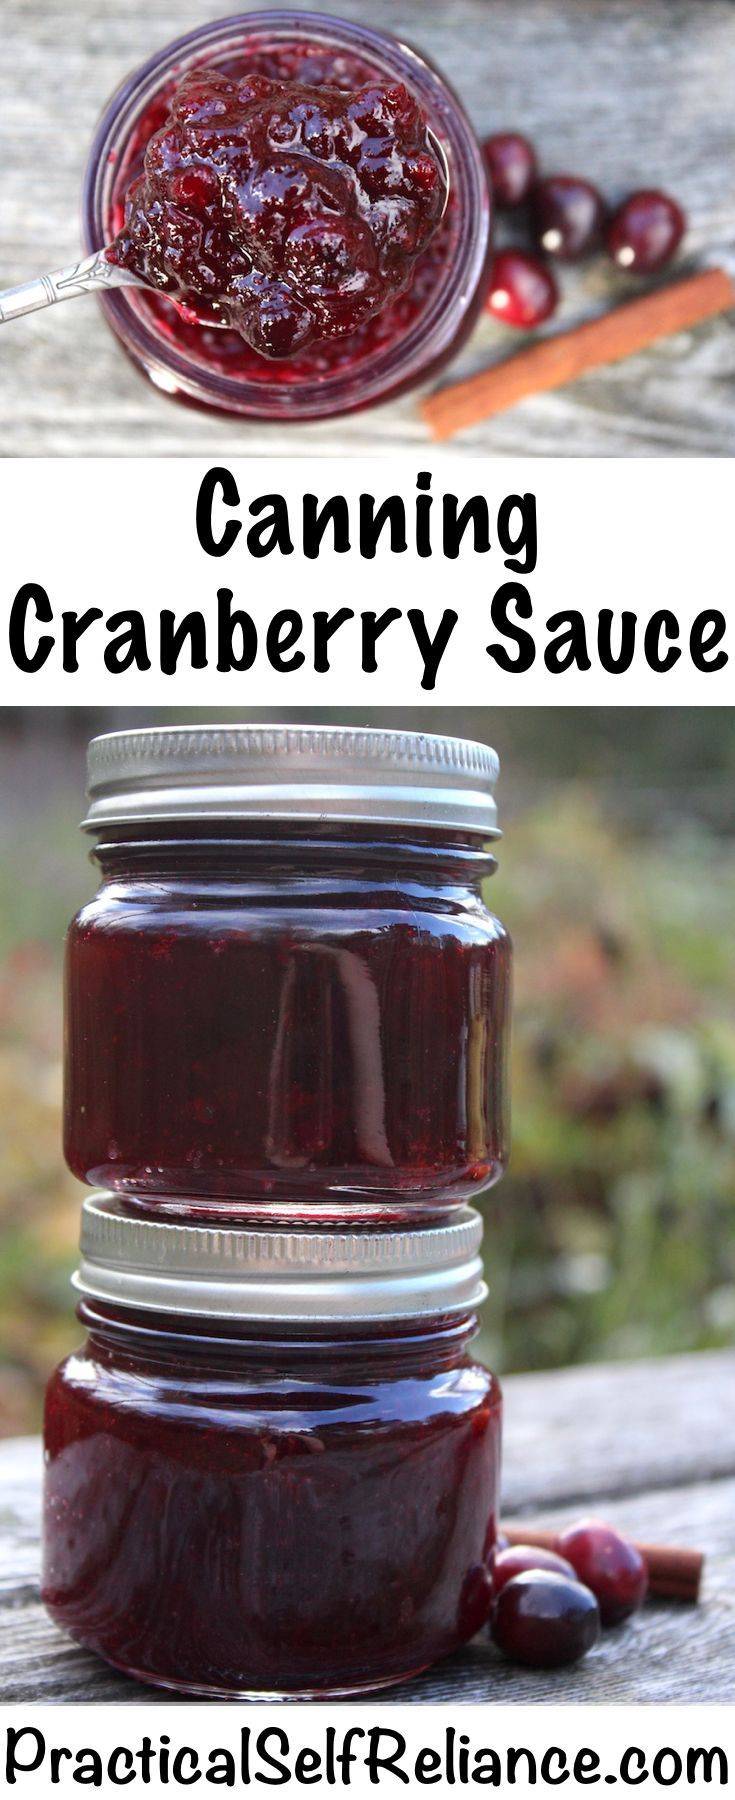 Cranberry Sauce Recipe Homesteading ♥︎ Canning